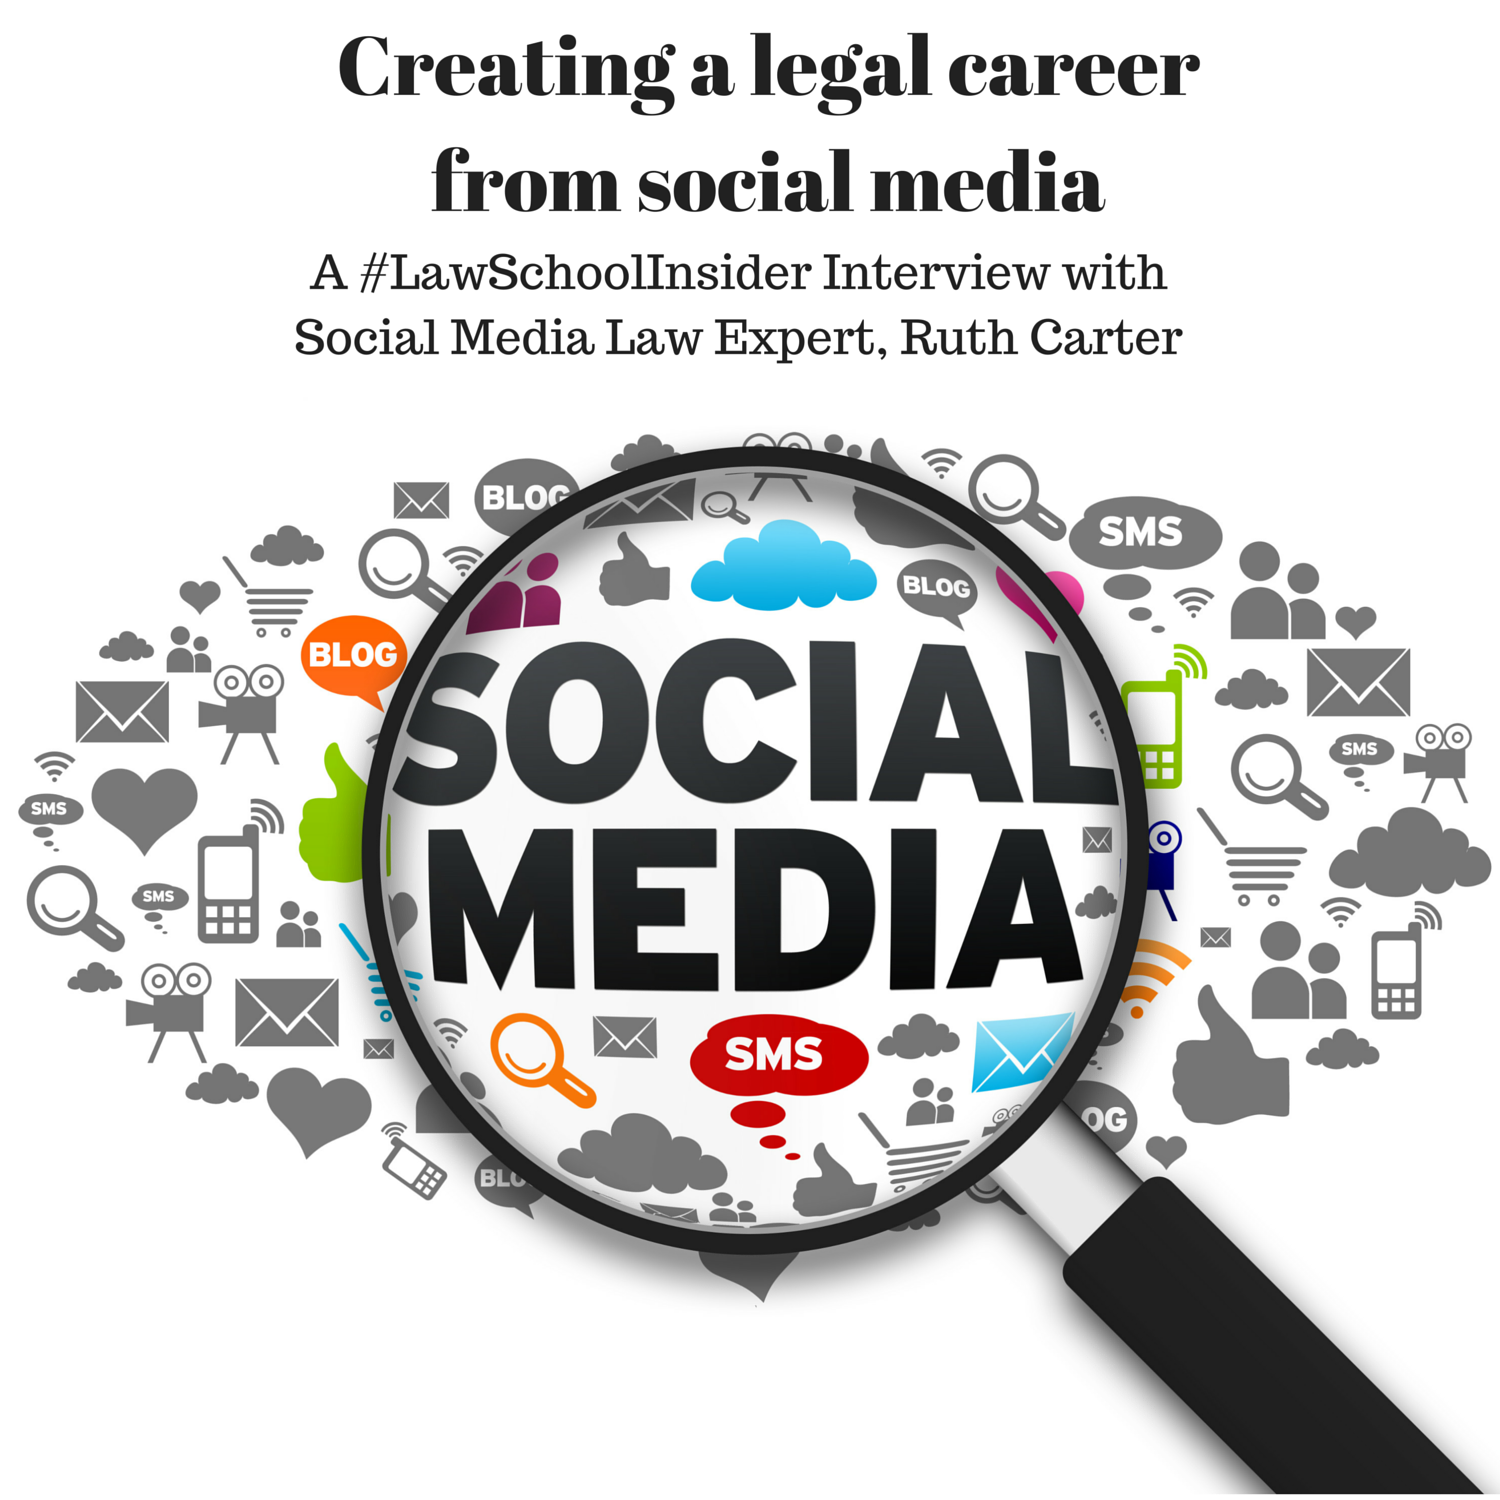 Creating_a_legal_career_from_social_media.png